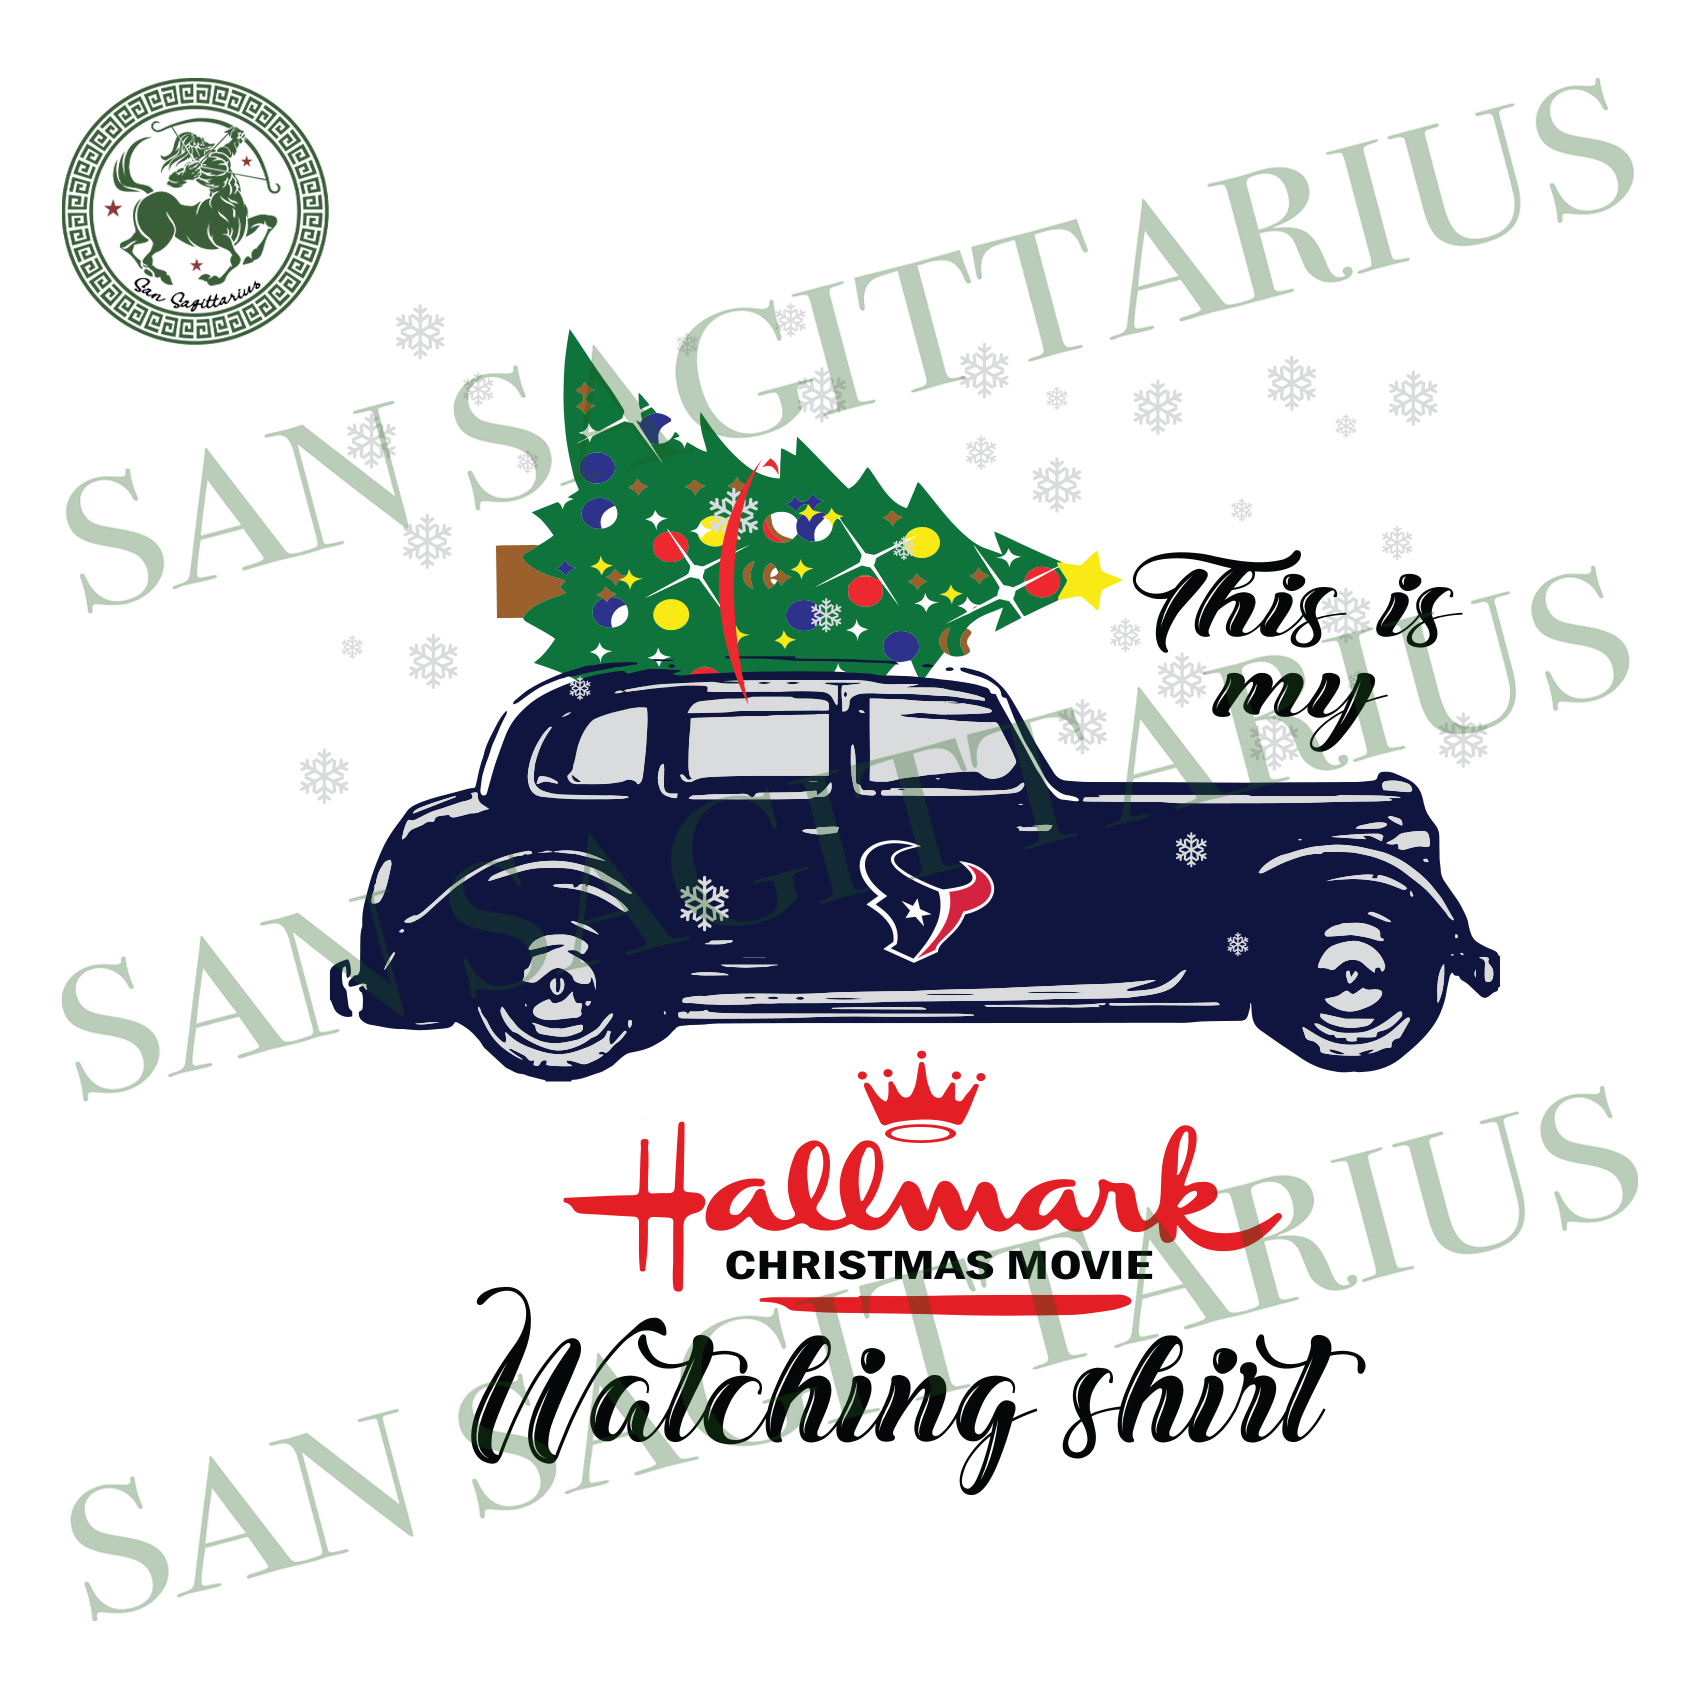 Houston Texans This Is My Hallmark Christmas Movie Watching Shirt, Sport Svg, Christmas Svg, Houston Texans Svg, NFL Sport Svg, Houston Texans NFL Svg, Houston Texans NFL Gift, Football Svg